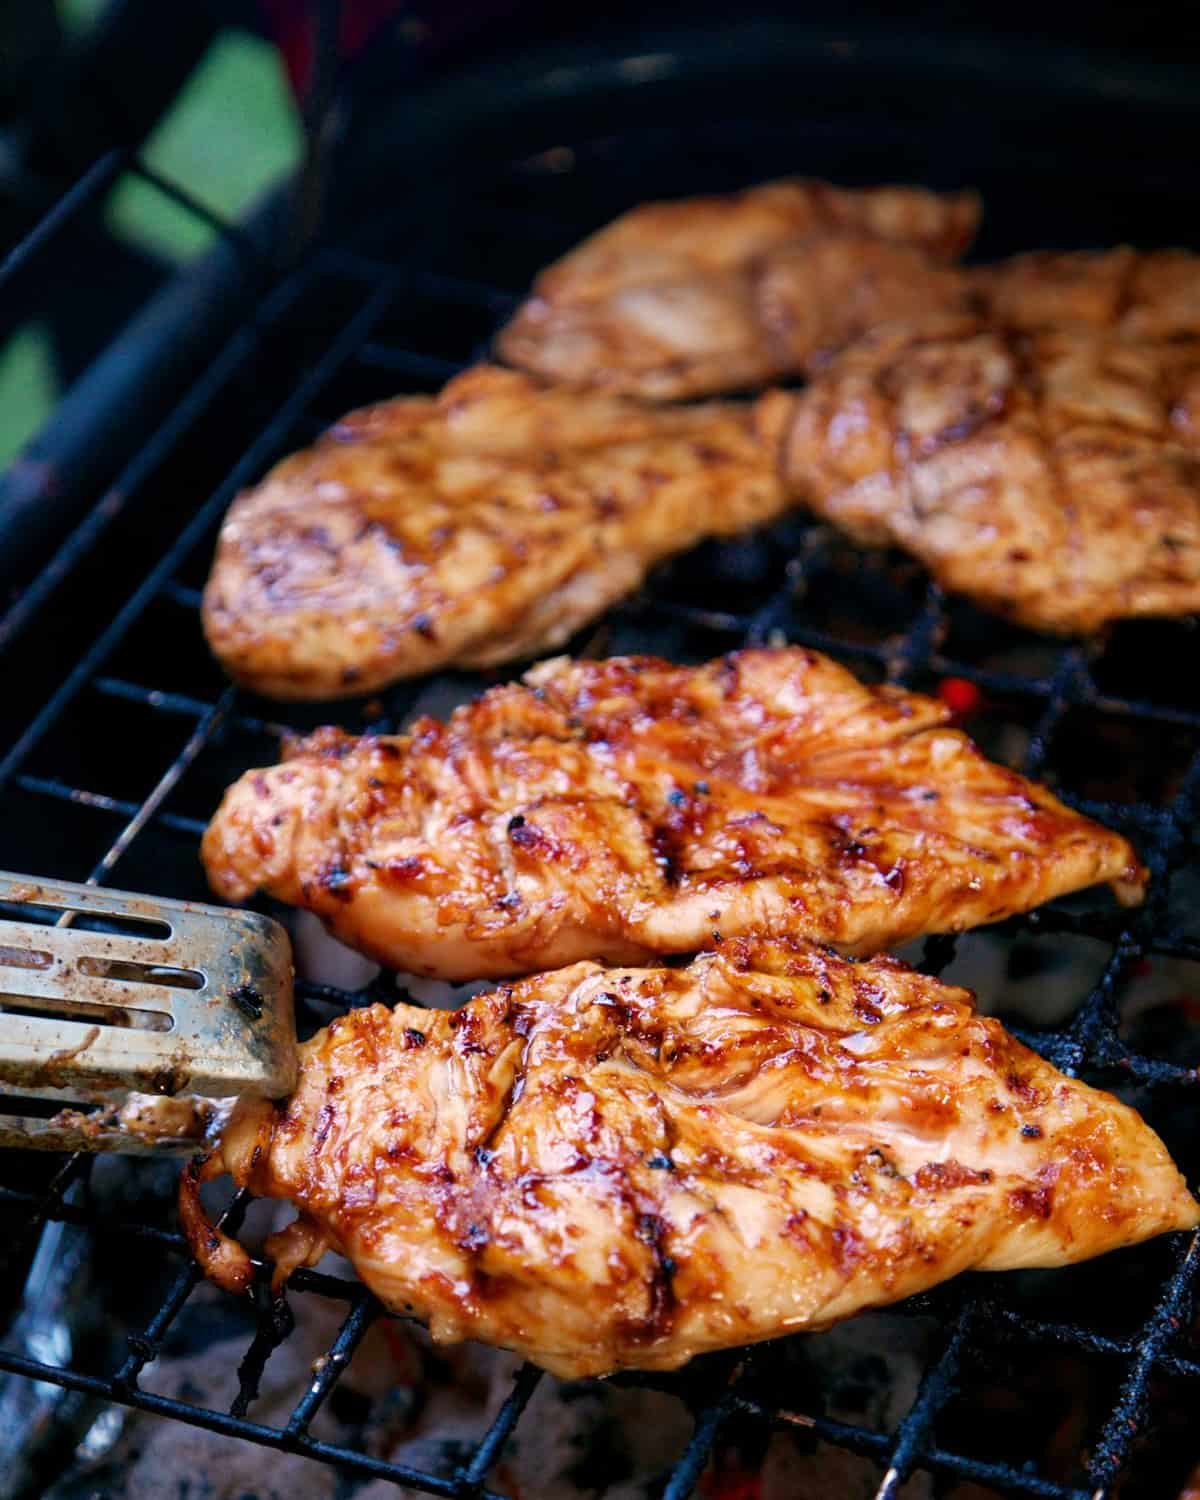 3-Ingredient Italian BBQ Chicken - THE BEST chicken marinade! We eat this at least once a week. SO delicious and SUPER easy!! You probably have all the ingredients in your pantry right now. Make it tonight!!